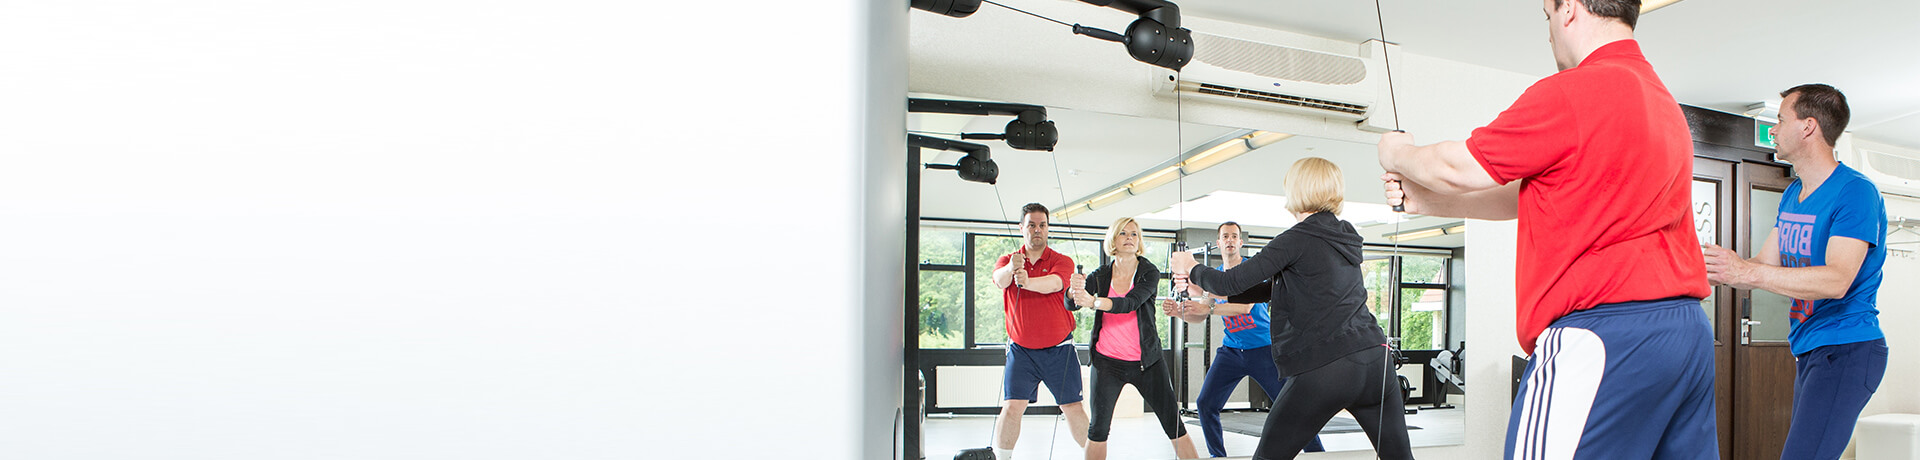 personal training oldenzaal